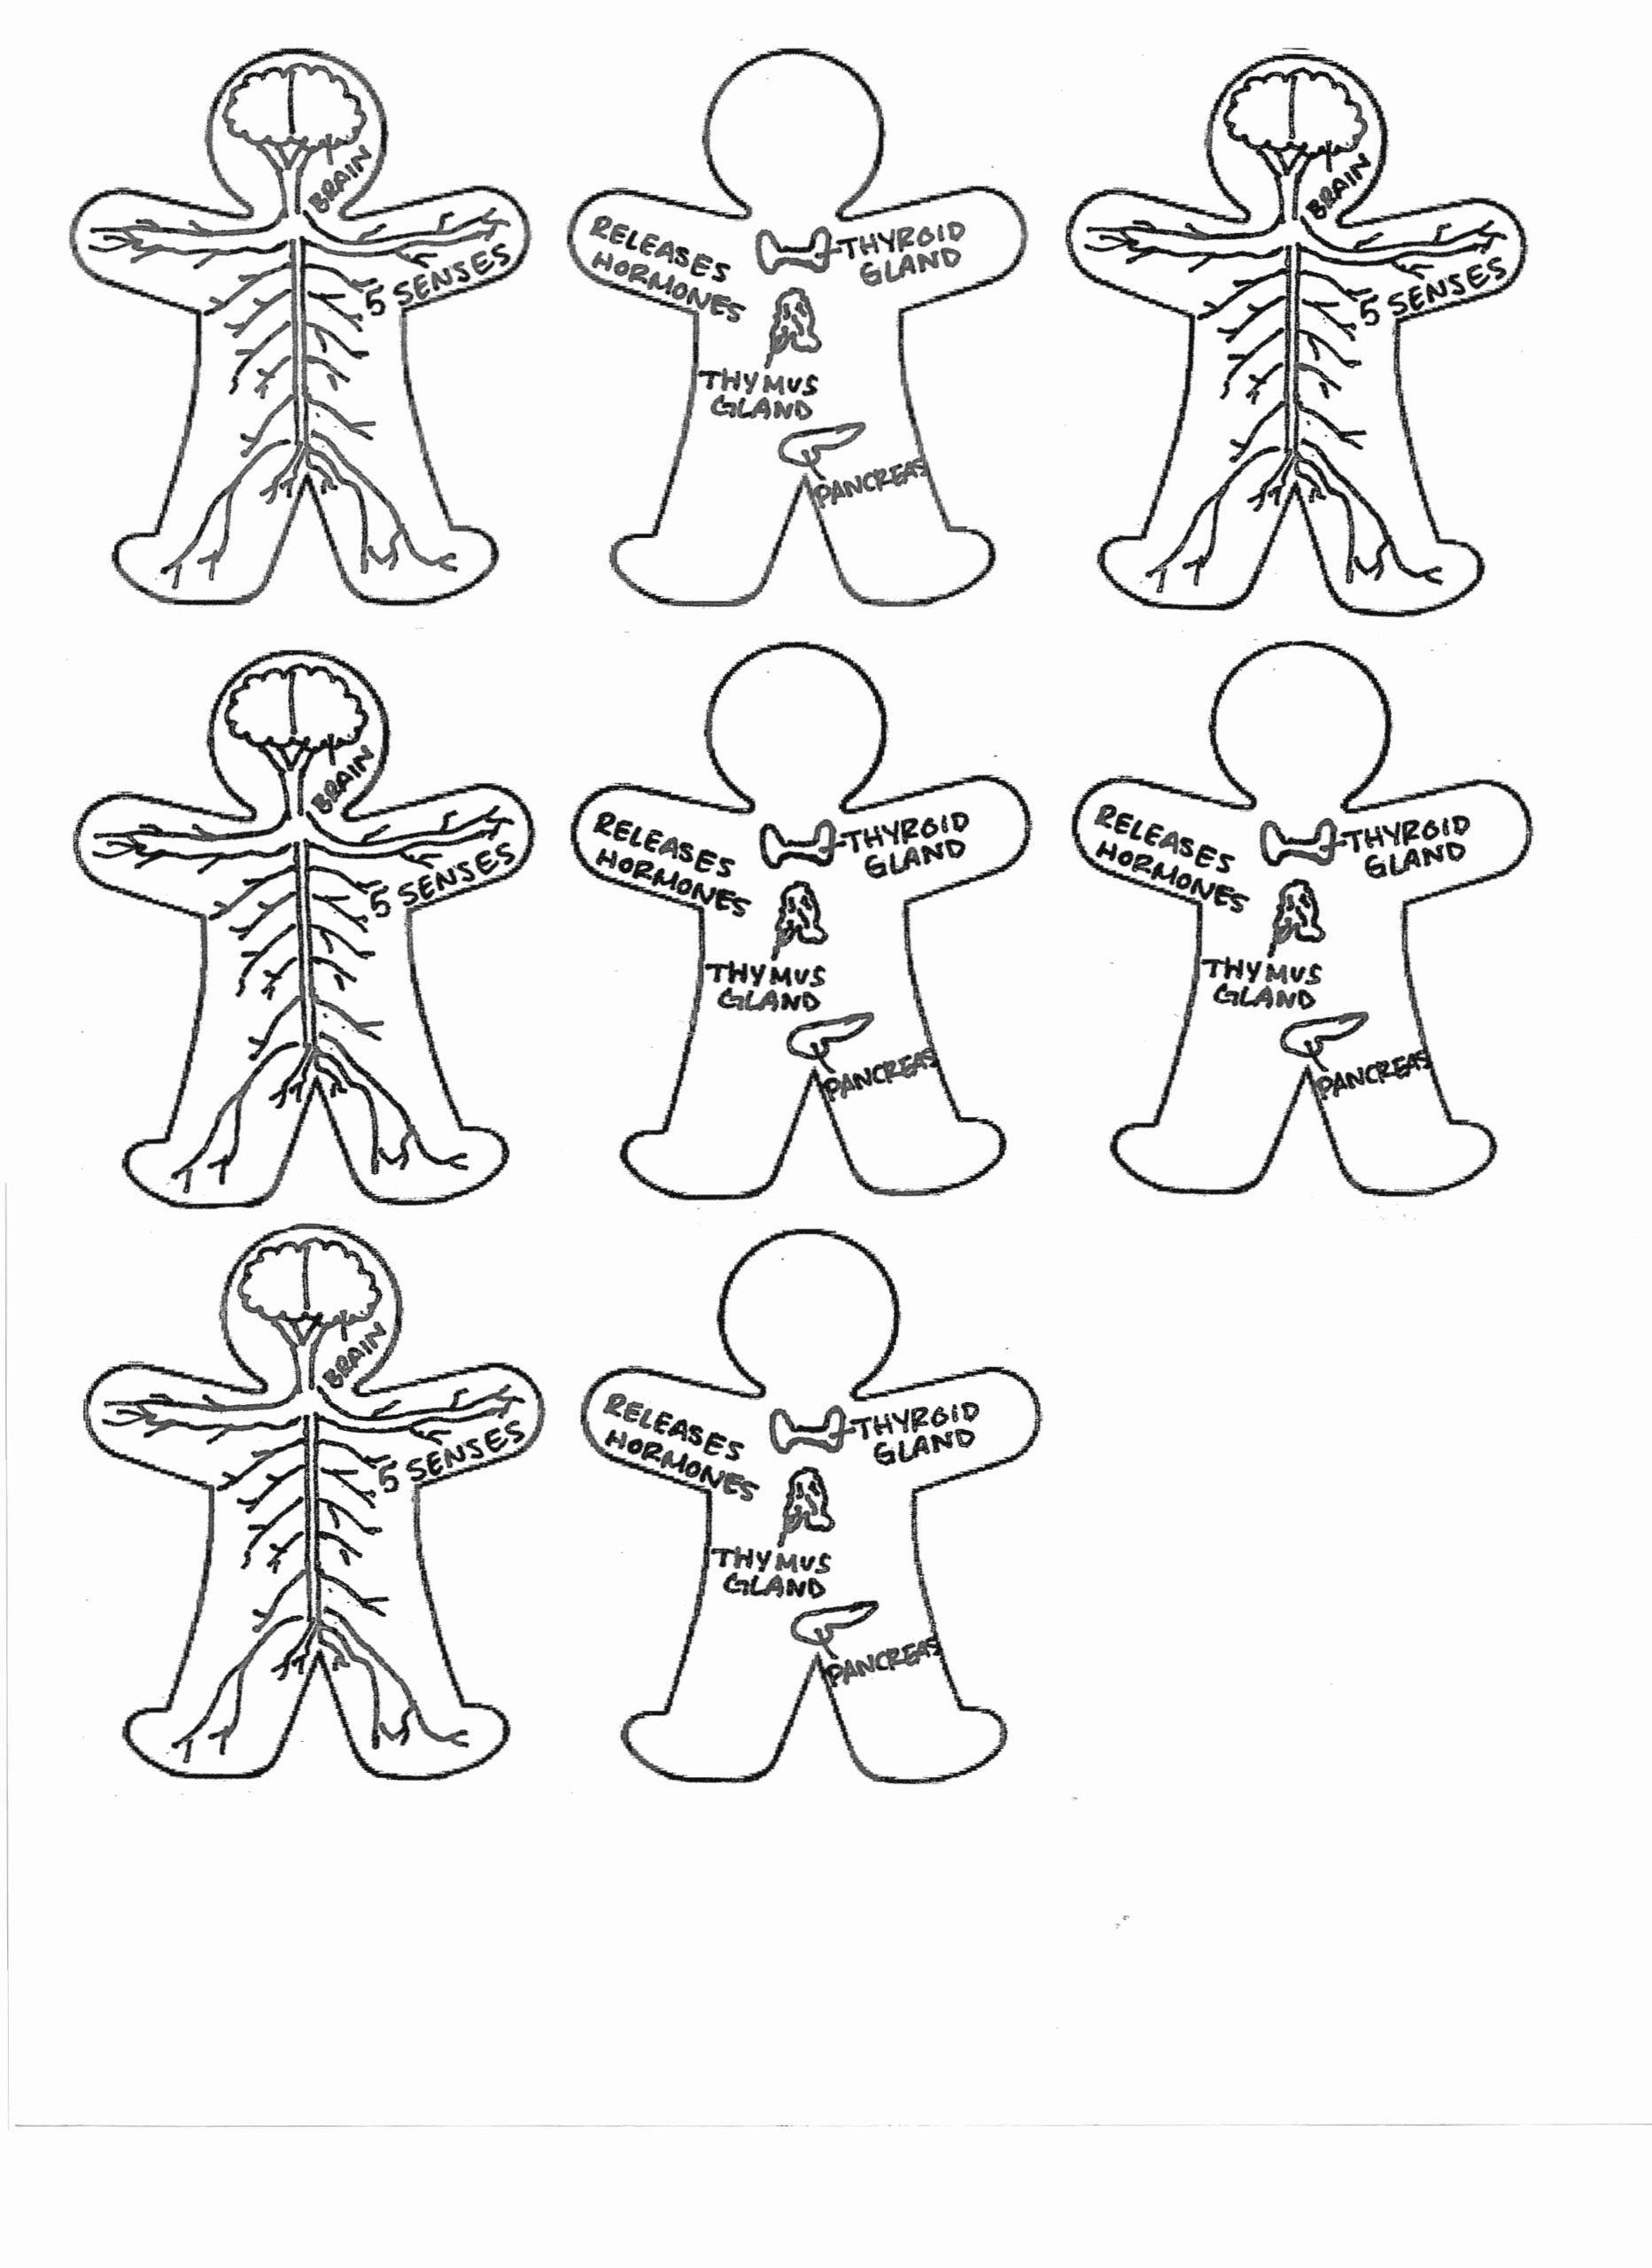 Human Body Systems Matching Worksheet top Hiddenfashionhistory Matching Worksheets for Year Olds